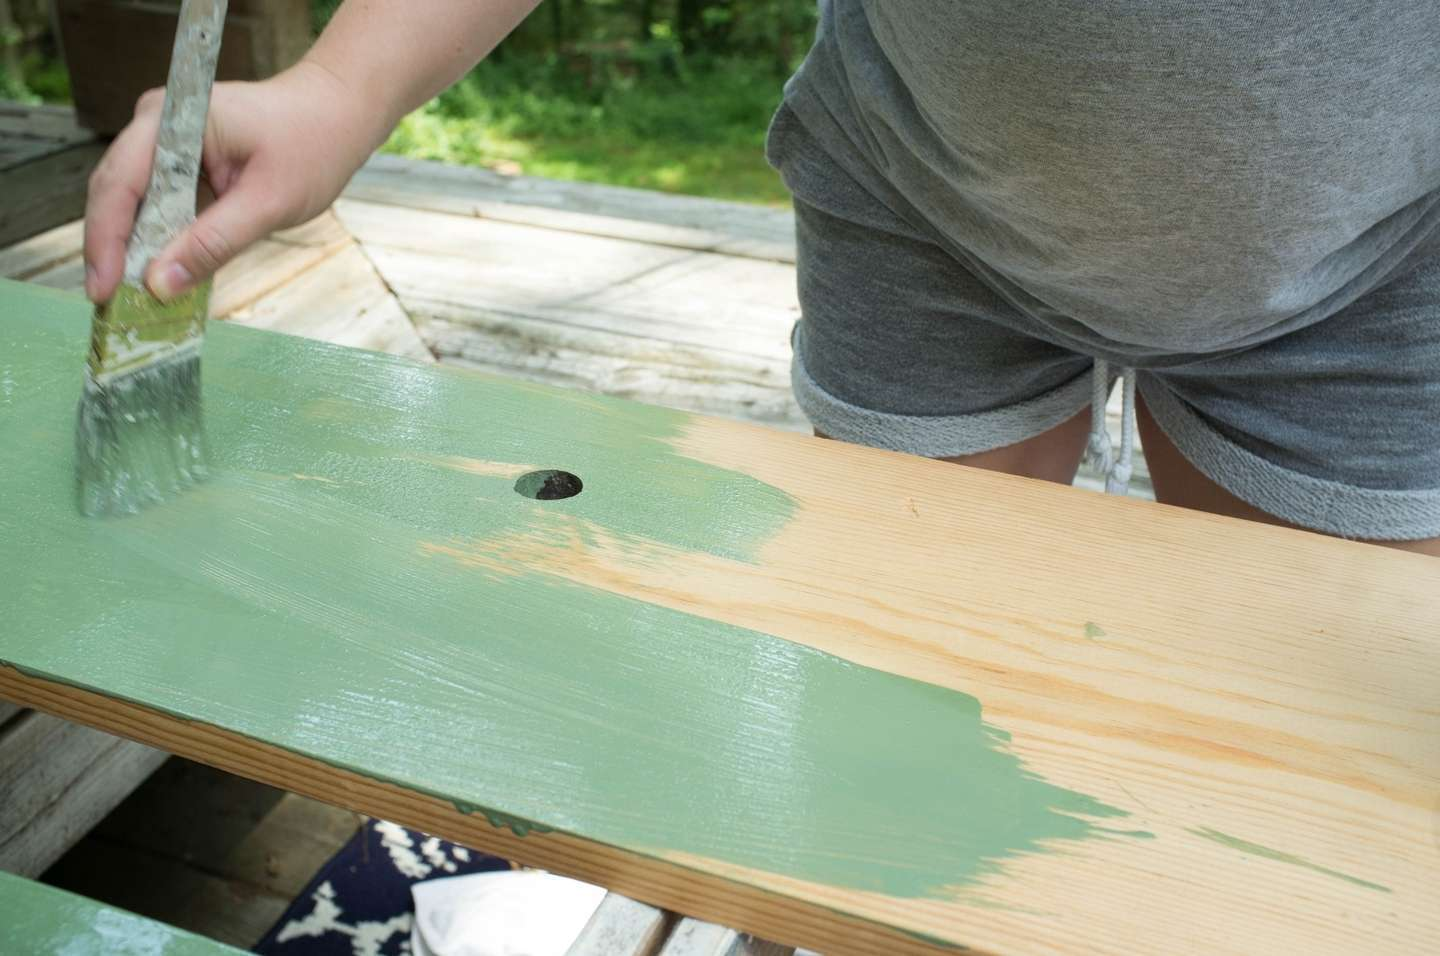 Painting and staining